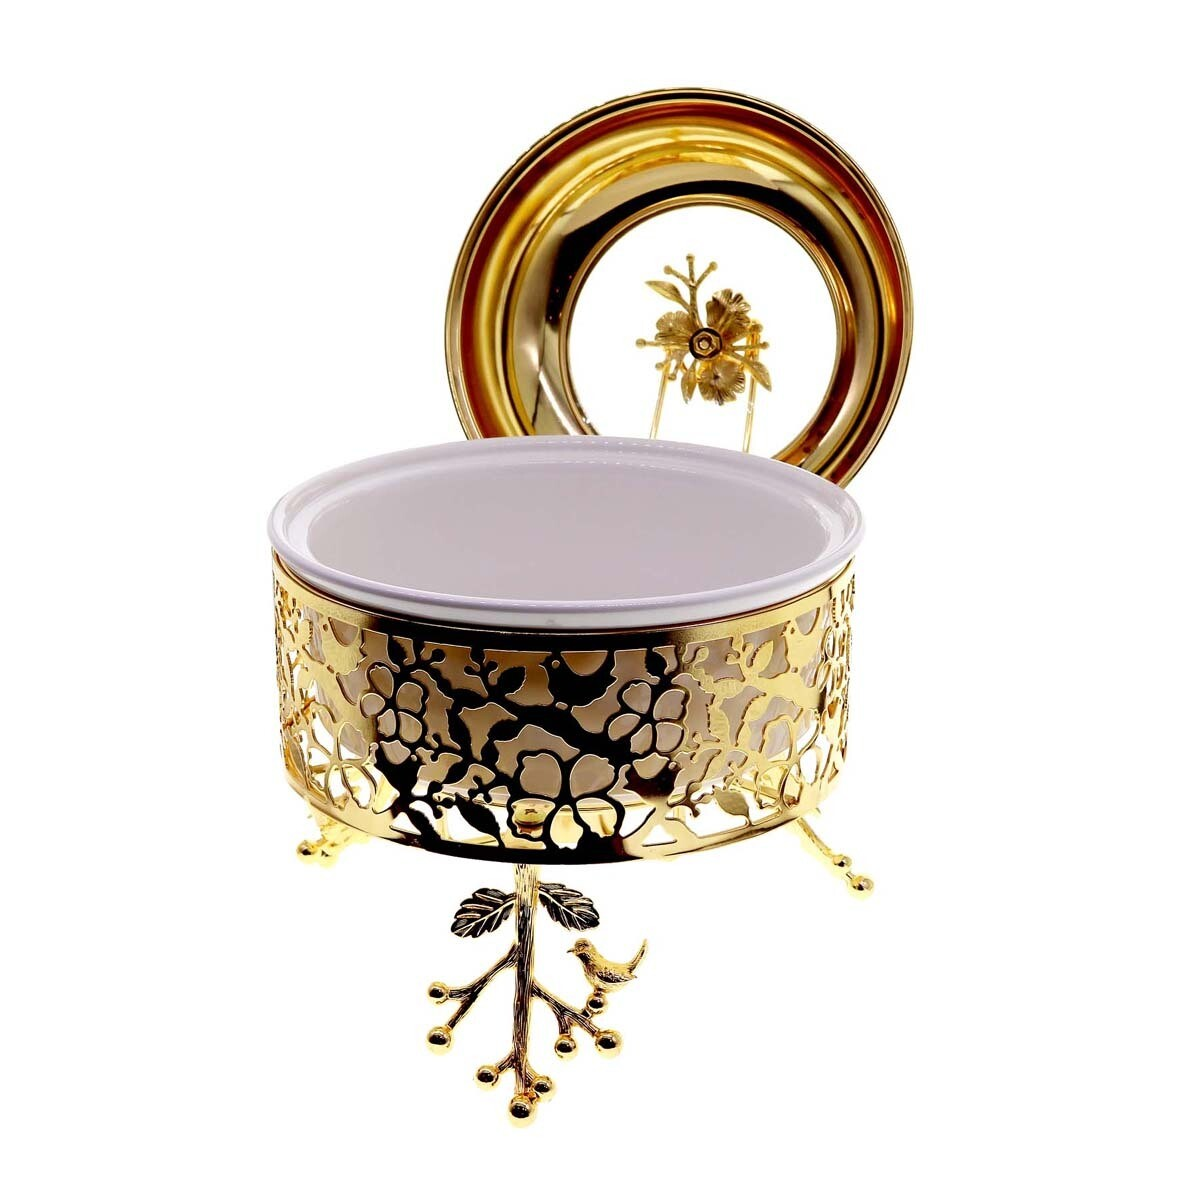 Liying Big Buffet Bowl with Cover and Food Server 31cm Diameter, Gold Gold 31X15X31 centimeter